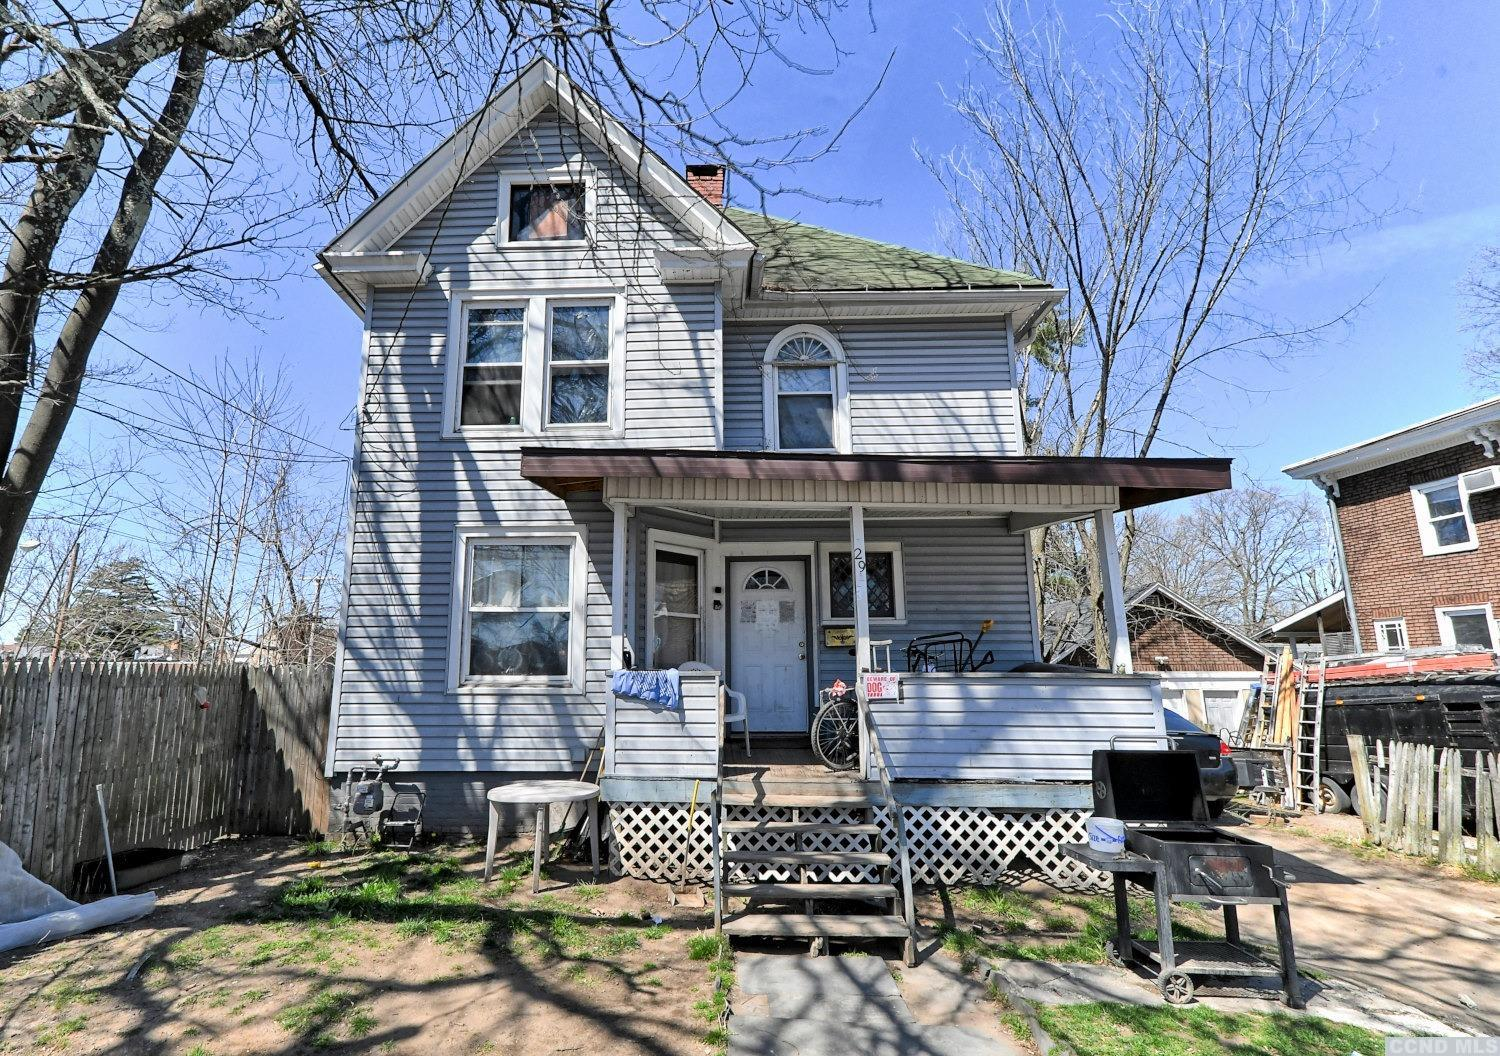 A 3 Bedroom, 1 Bath Two Story Home in the Heart of Kingston! The home has a living room, a kitchen, a dining room, 3 bedrooms, 1 full bath, and a walk-up attic. There's a front covered porch and a fenced backyard. Please view our 3D virtual tour of the home.